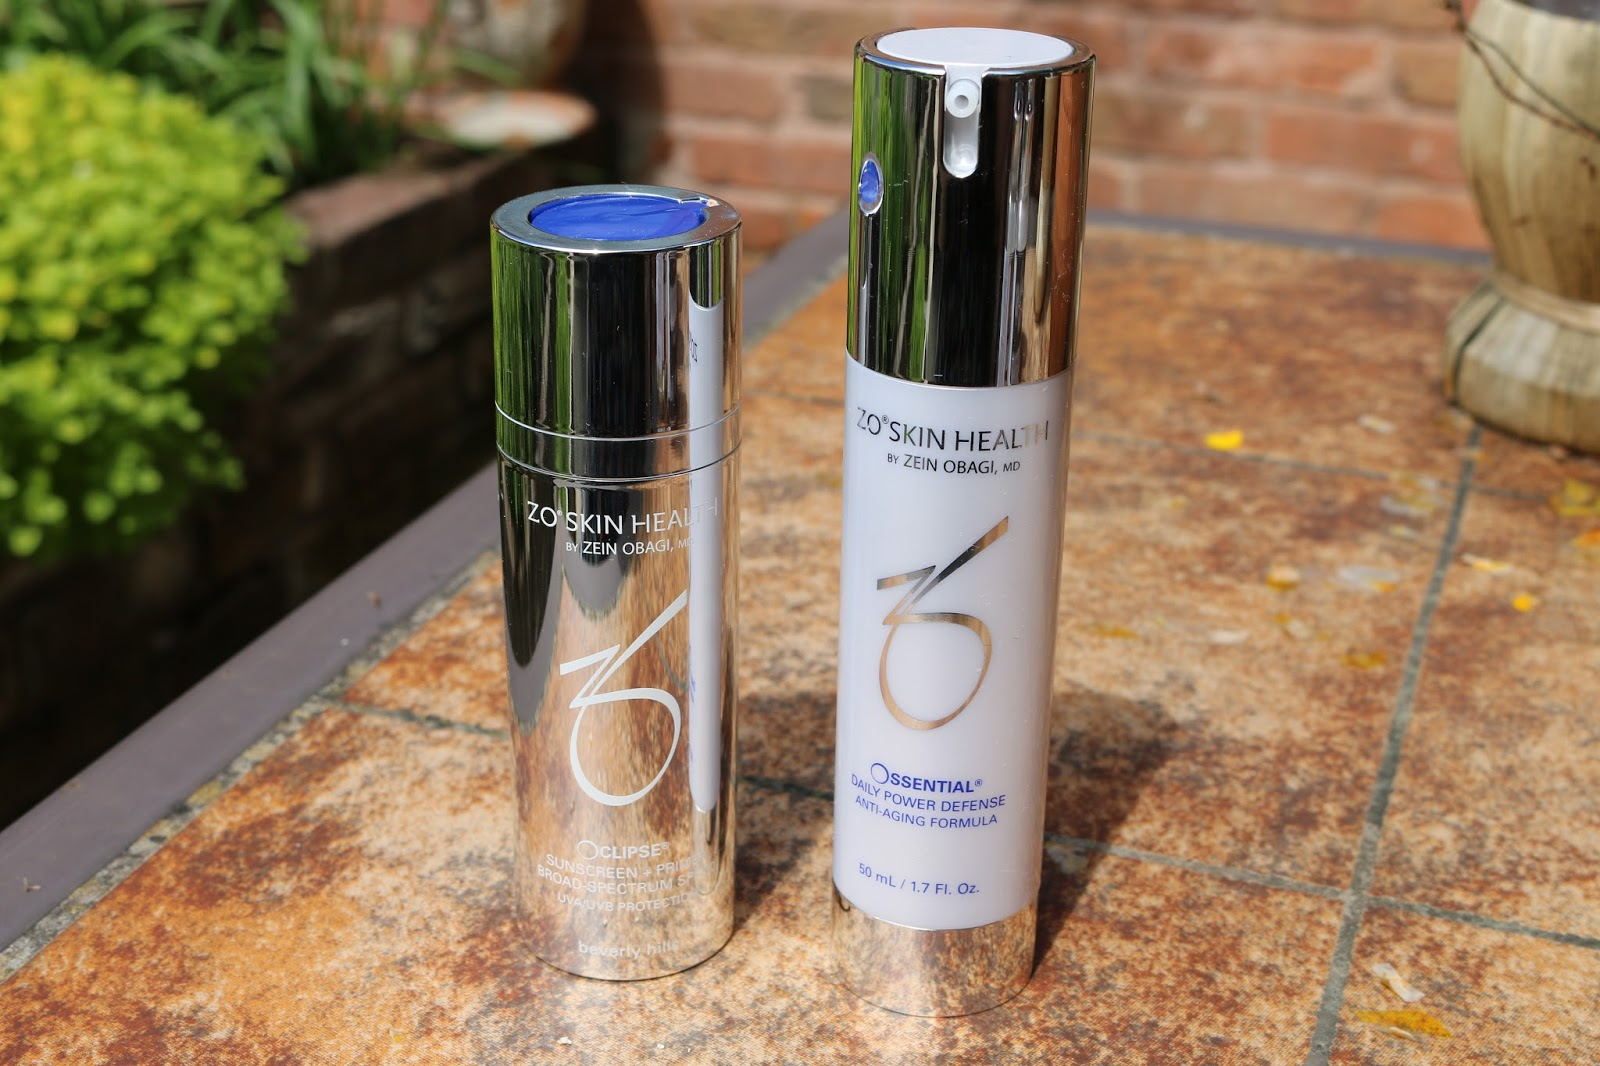 Staying Safe in the Sun with Zo Skin Health